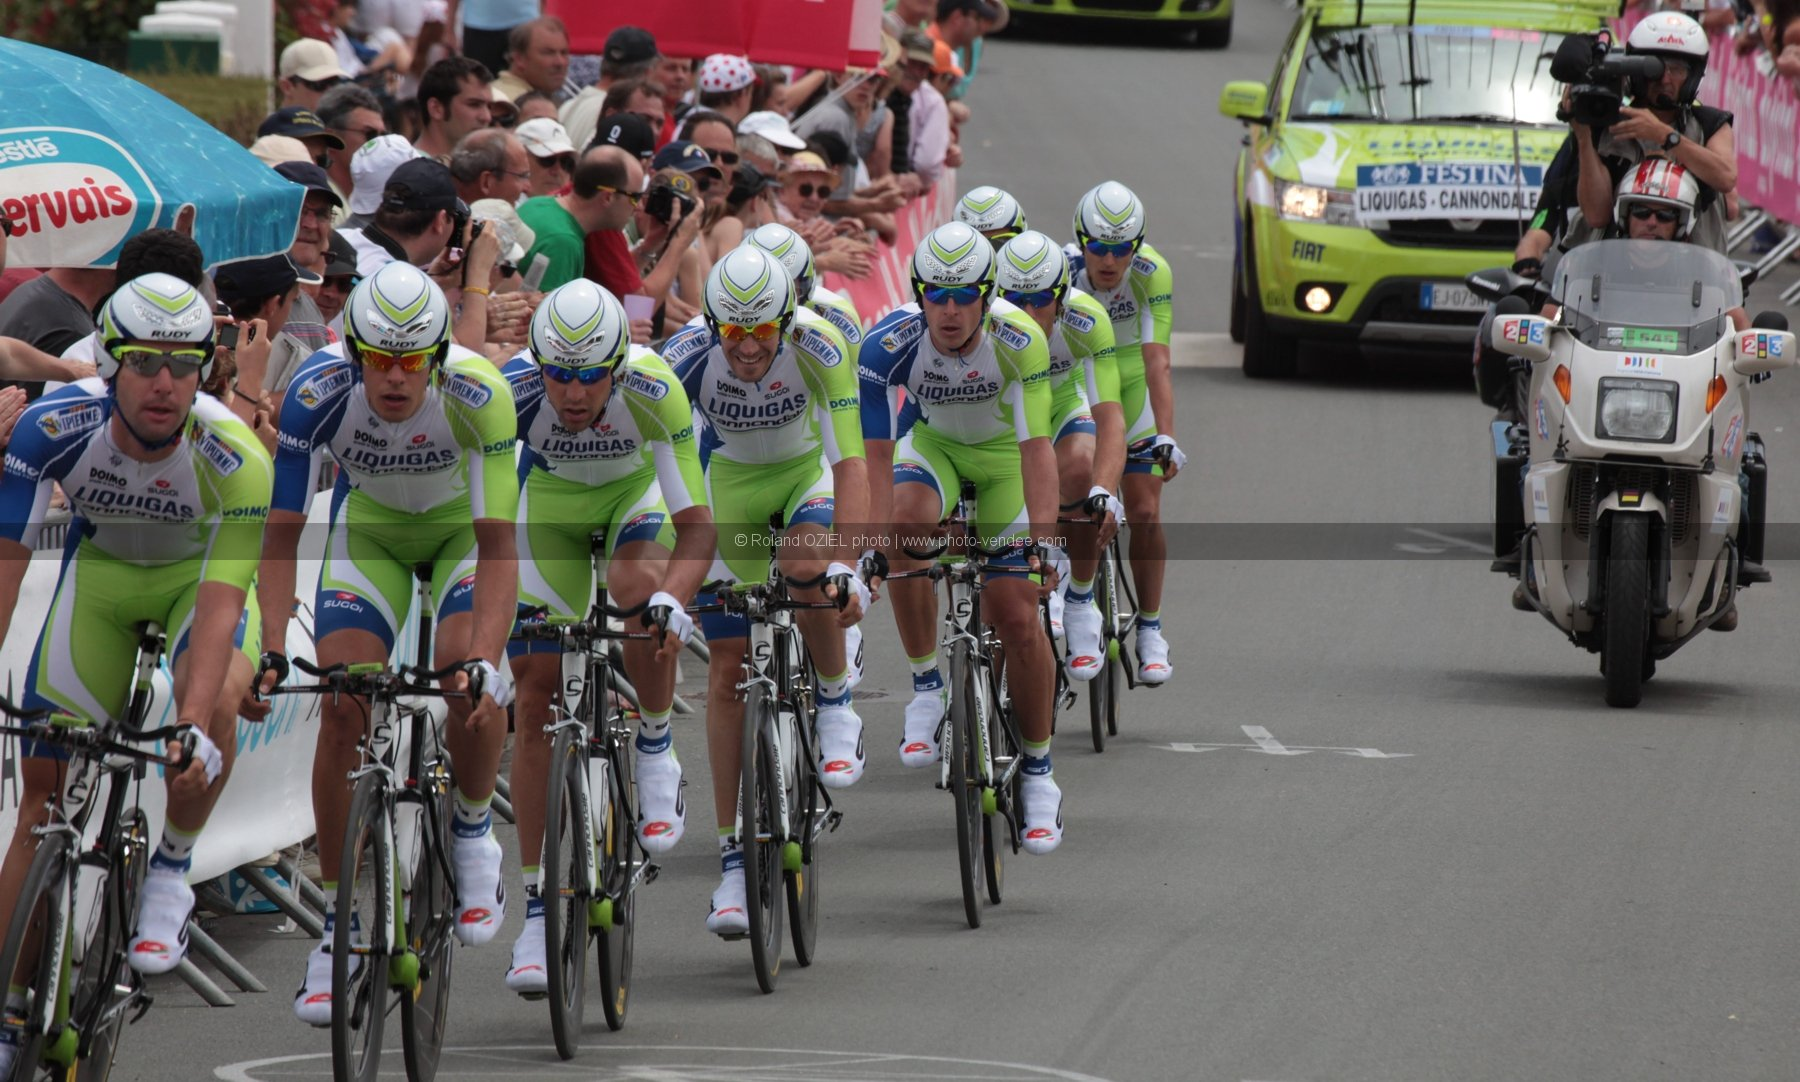 Photo equipe Liquigas Tour de France 2011